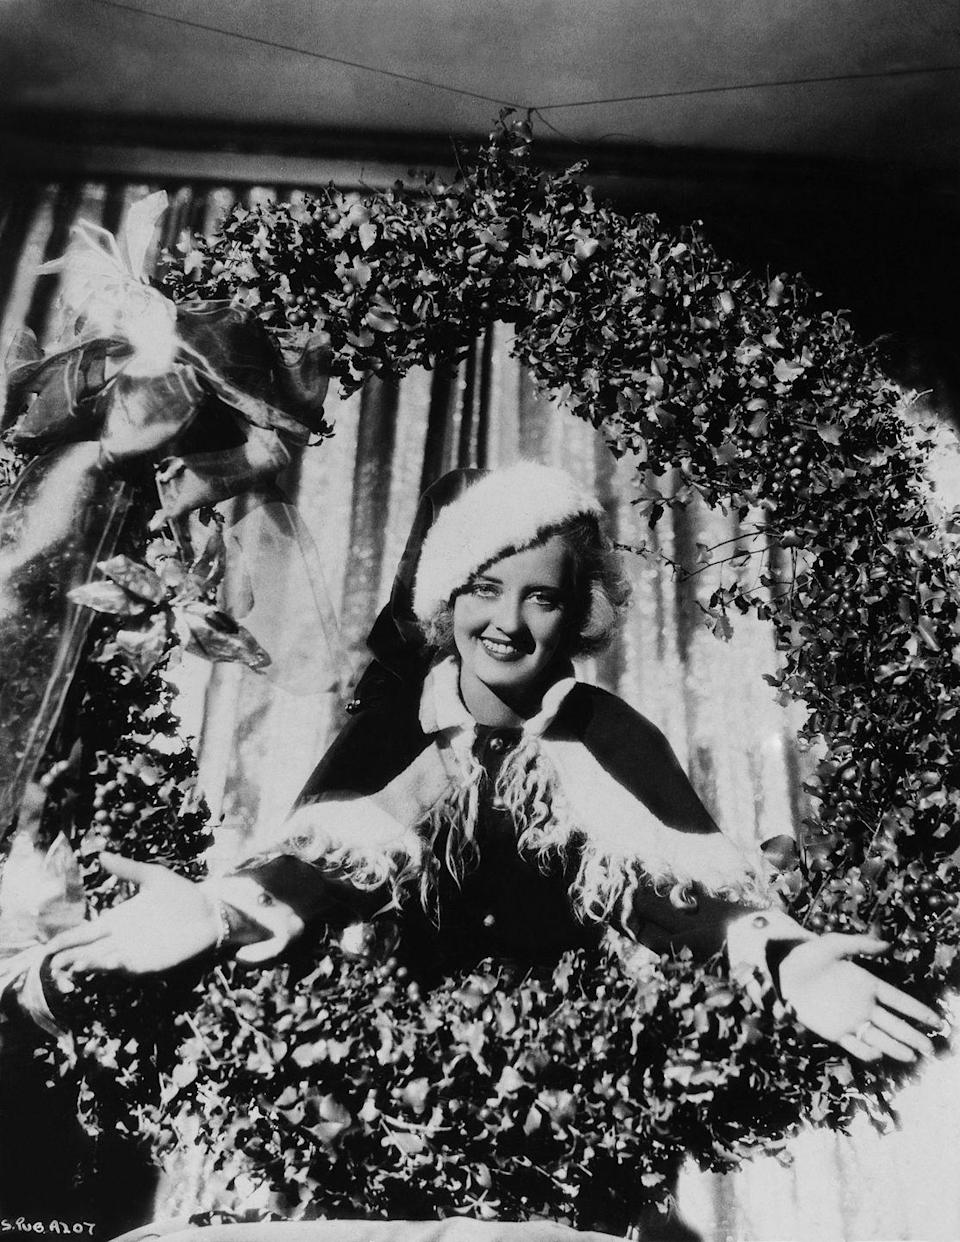 <p>Bette Davis dressed up as Santa Claus — or maybe Mrs. Claus? — and posing in a giant holiday wreath back in 1930 is #goals.</p>